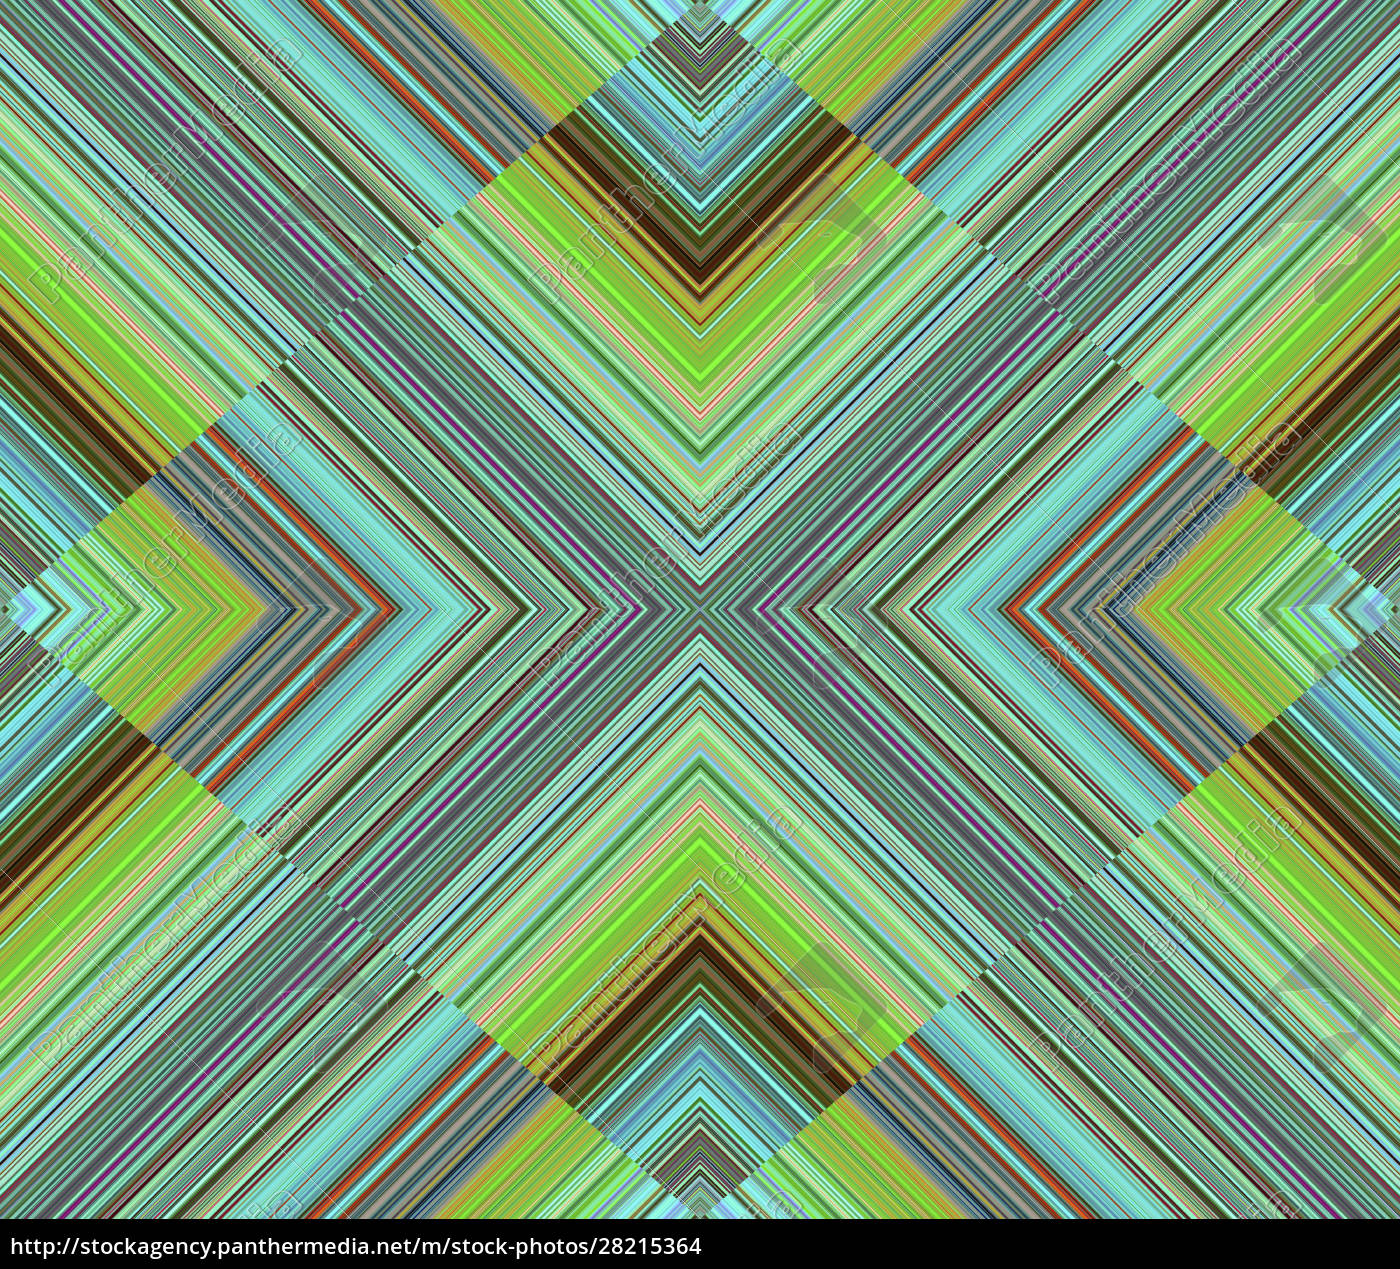 green, stripes, repeating, pattern, tile - 28215364